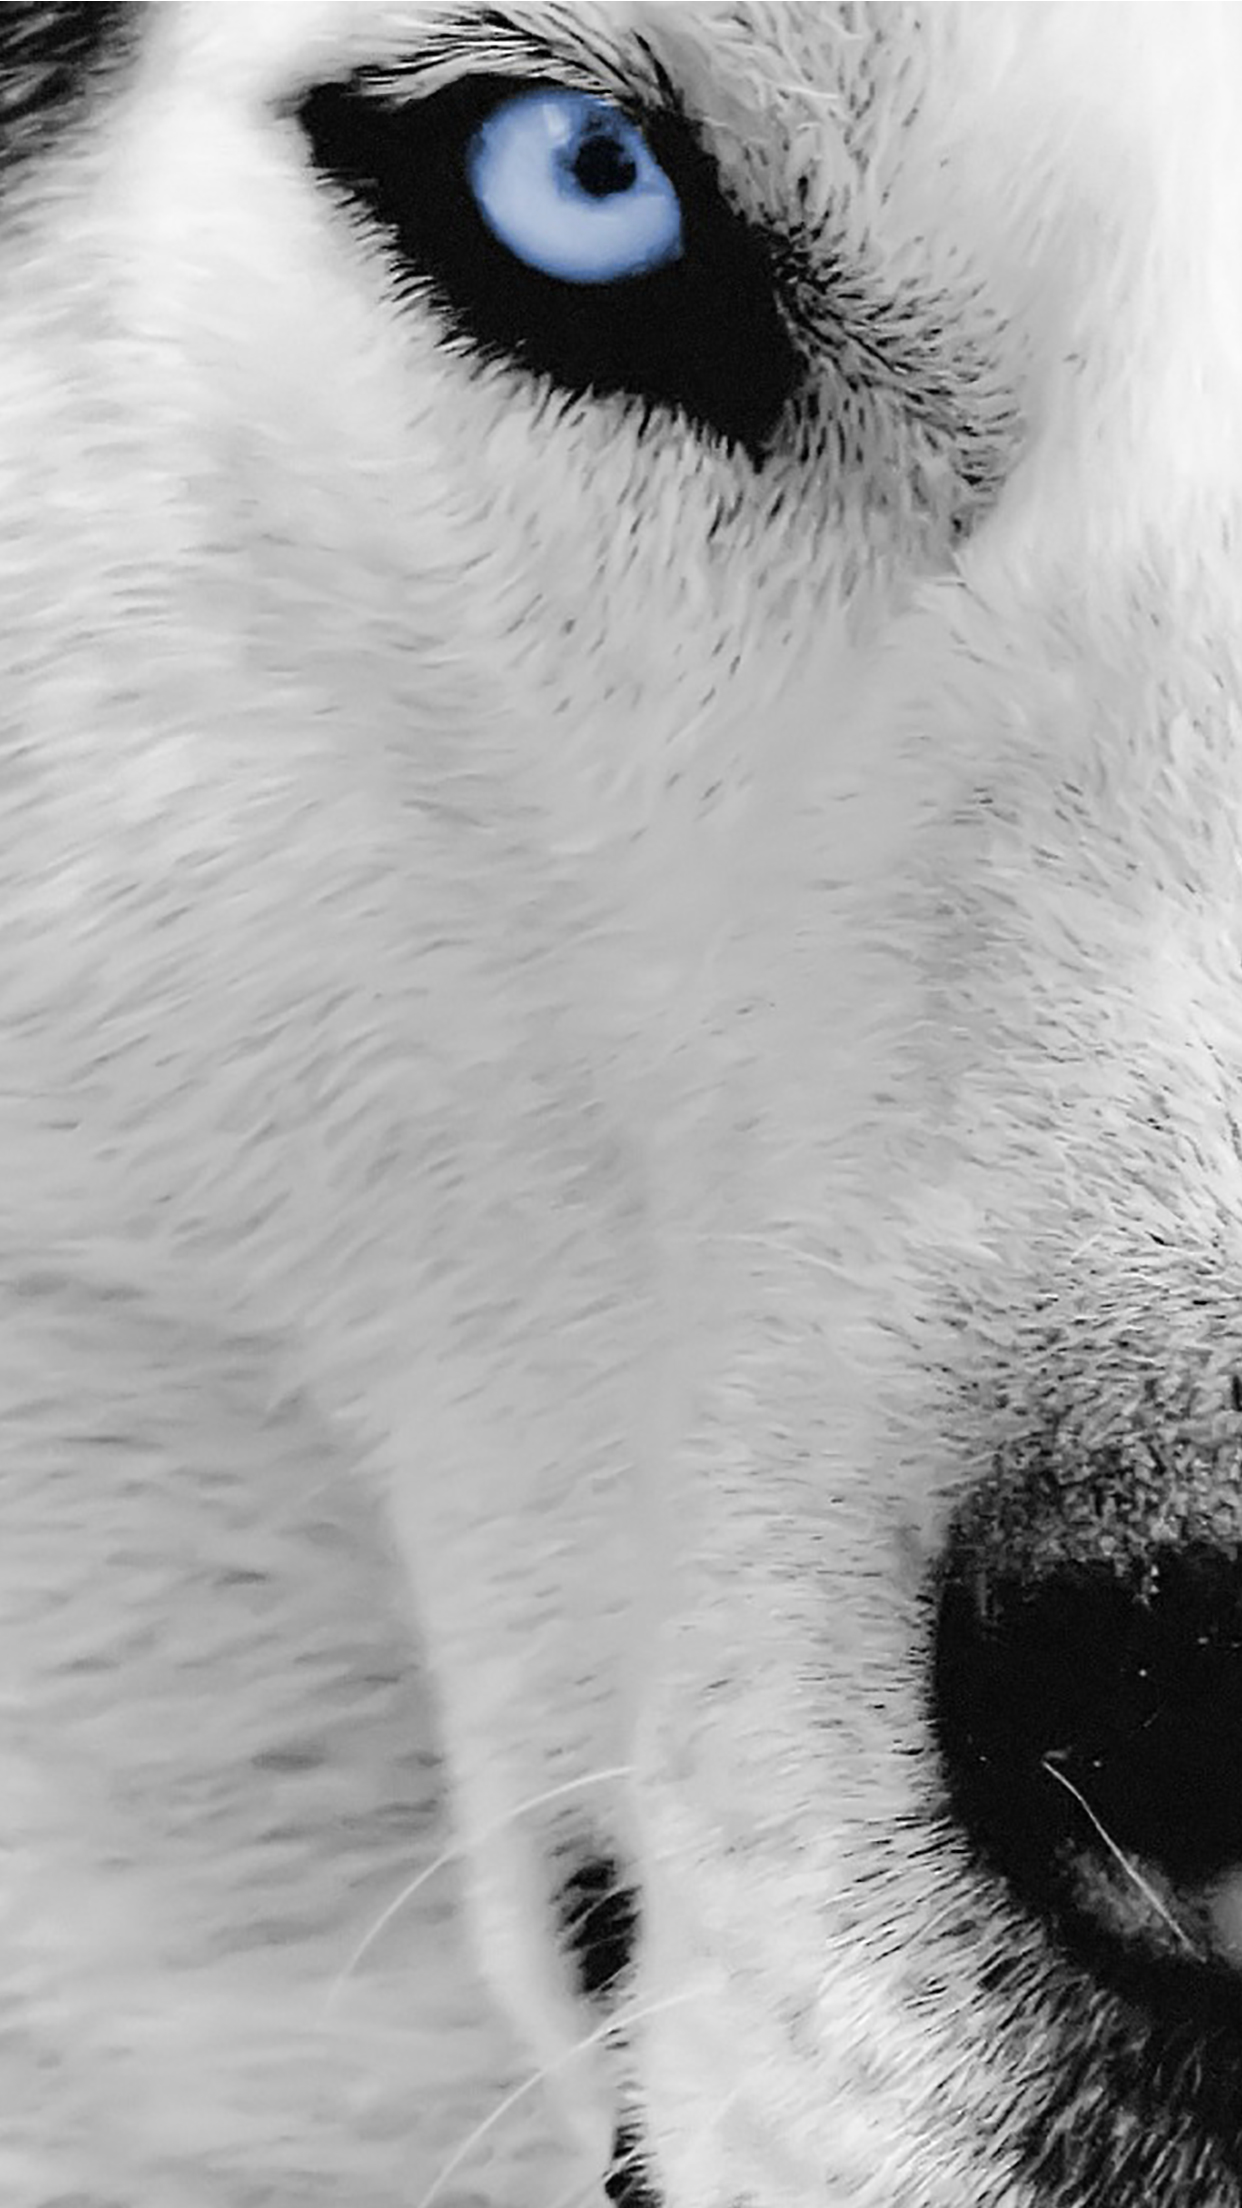 wolf iphone wallpaper les 3 wallpapers iphone du jour 02 02 2015 appsystem 8538